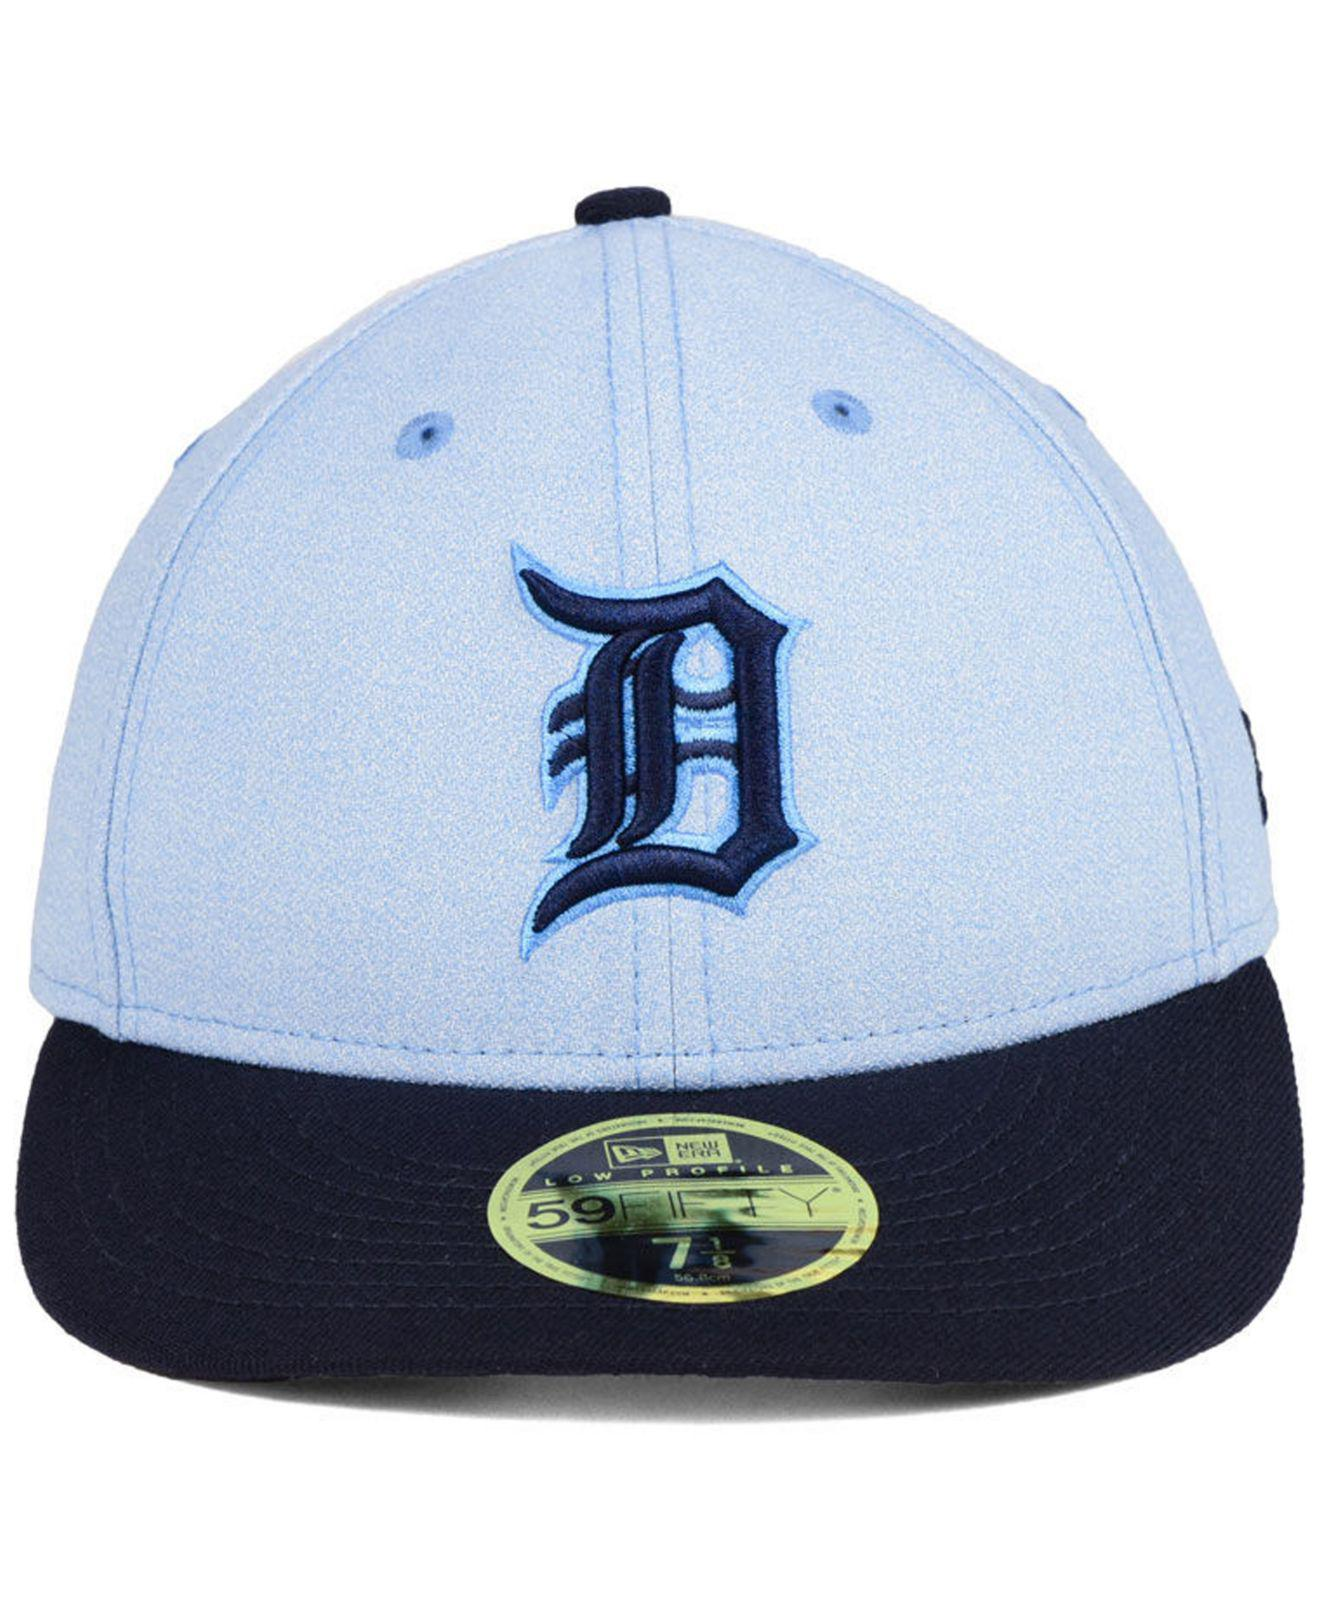 0e36224d ... norway lyst ktz detroit tigers fathers day low profile 59fifty cap in  blue for men 2faaa ...